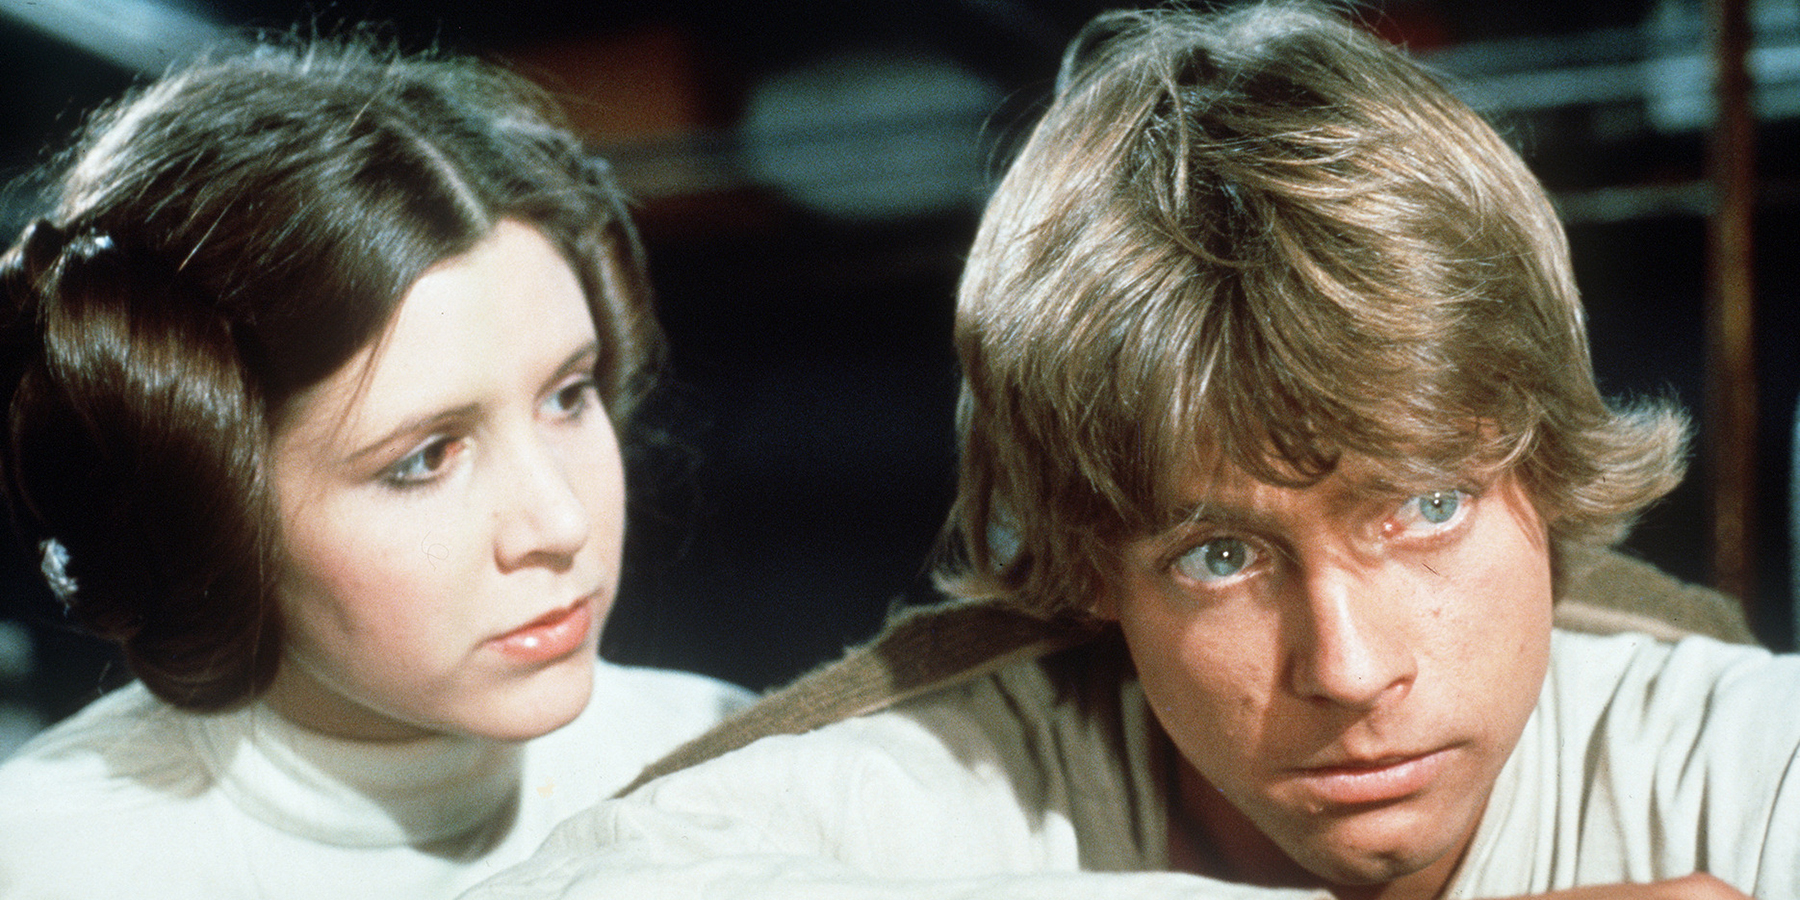 Star Wars' First Force-Sensitive Moment Between Luke & Leia, Revealed